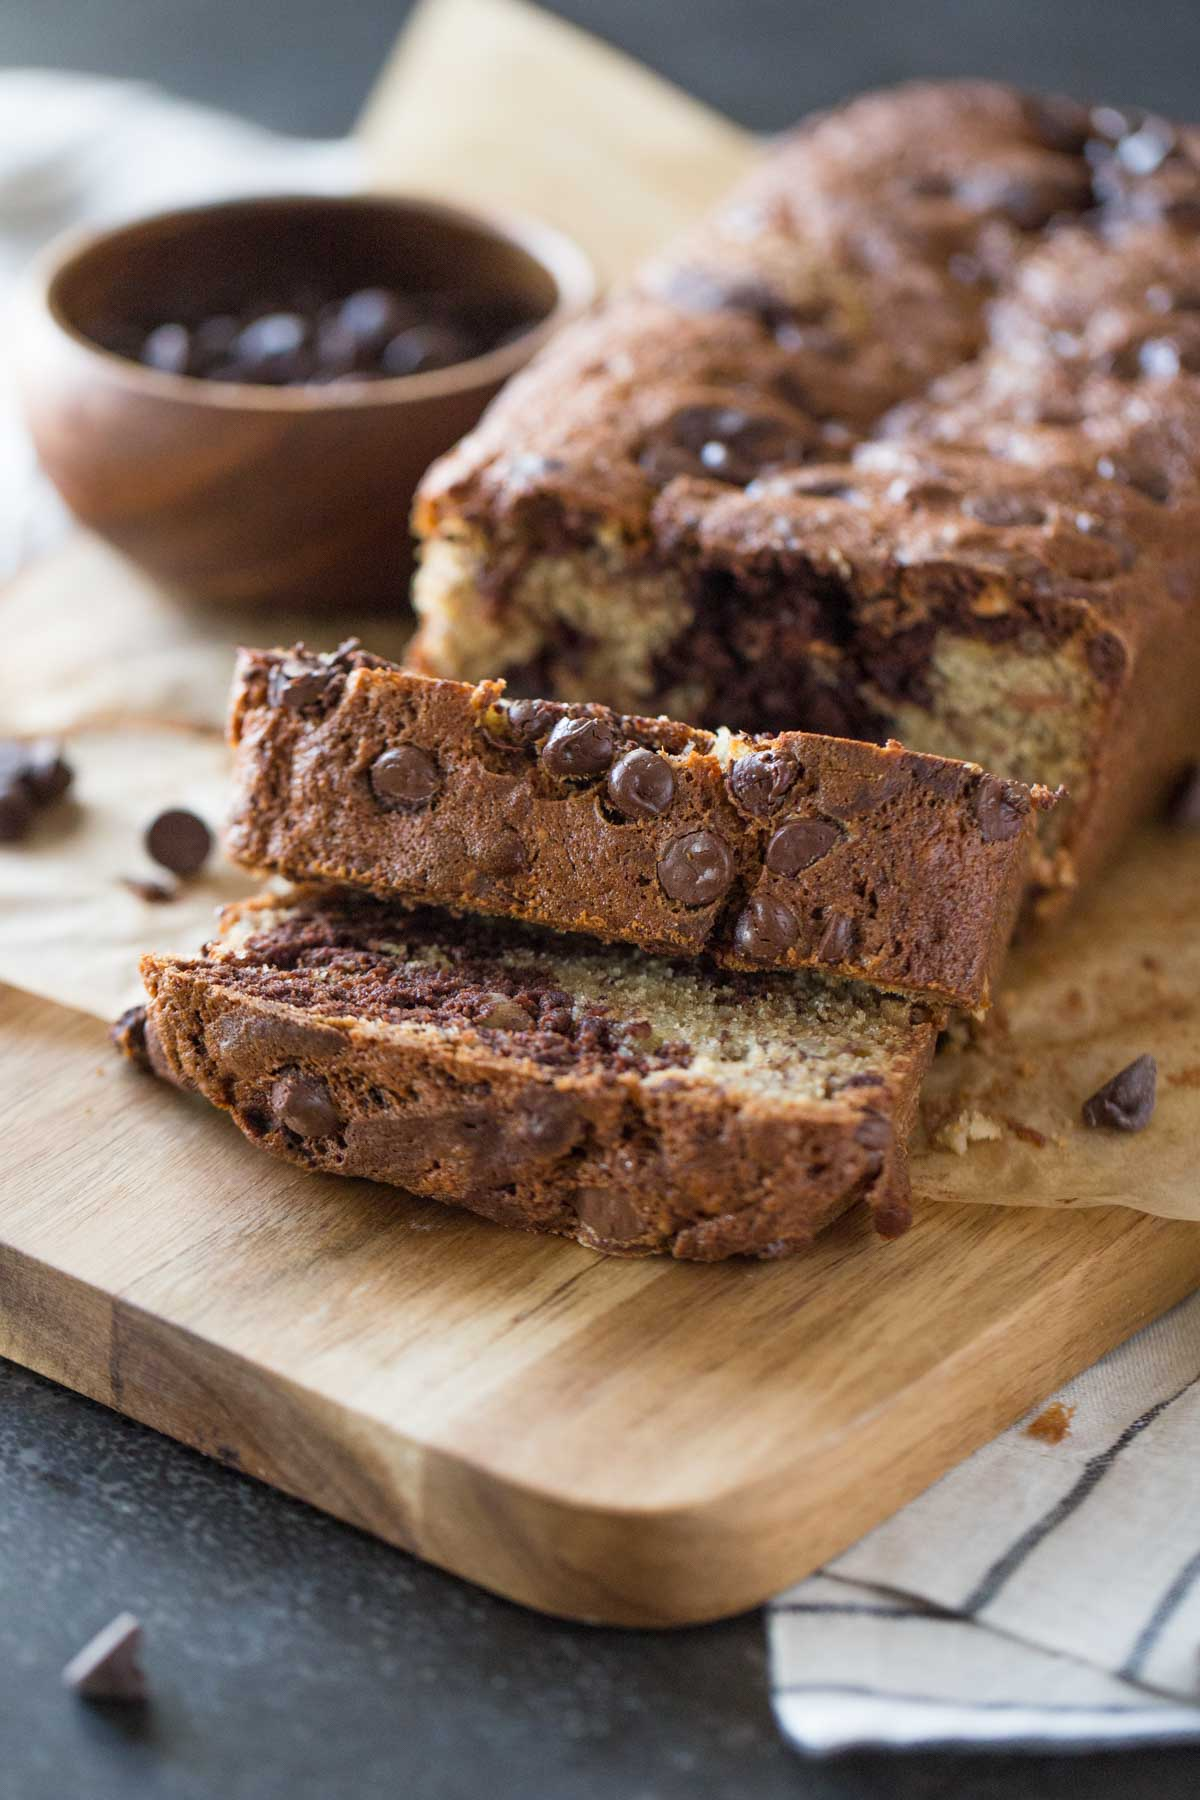 A loaf of Marbled Chocolate Banana Bread on a cutting board with a small wood bowl of chocolate chips.